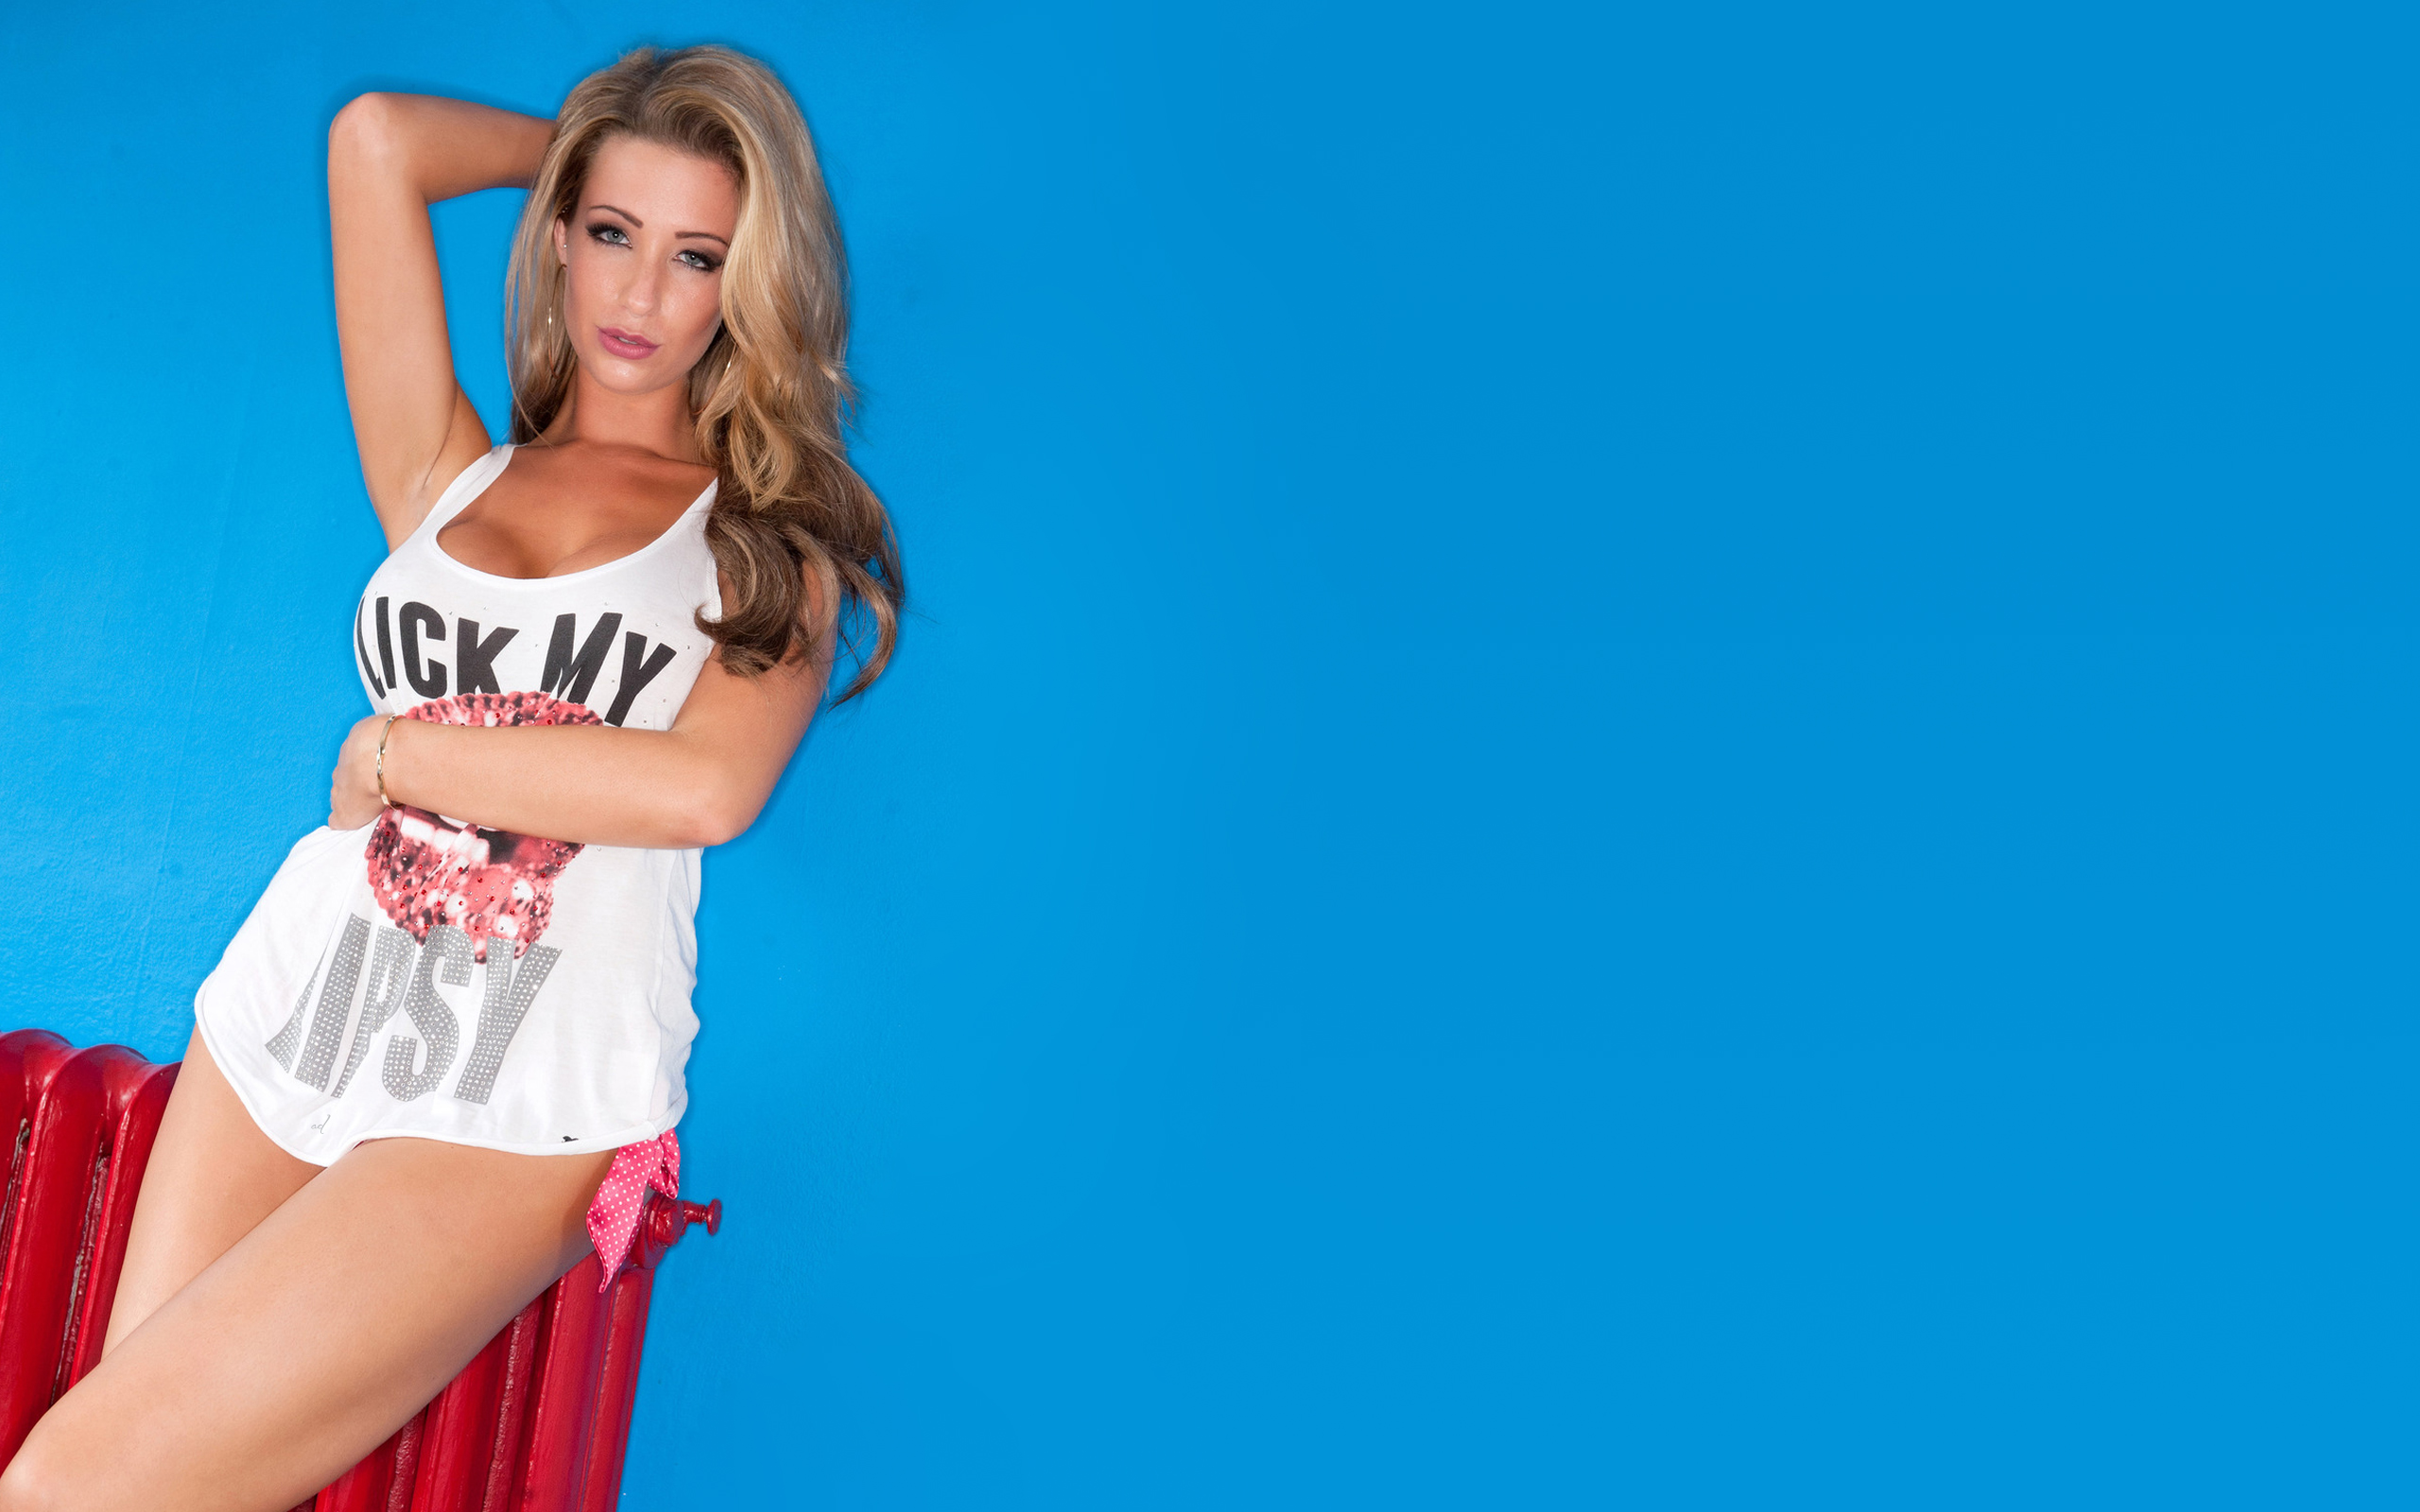 People 2560x1600 Danielle Anderson blonde model T-shirt hands in hair studio blue background